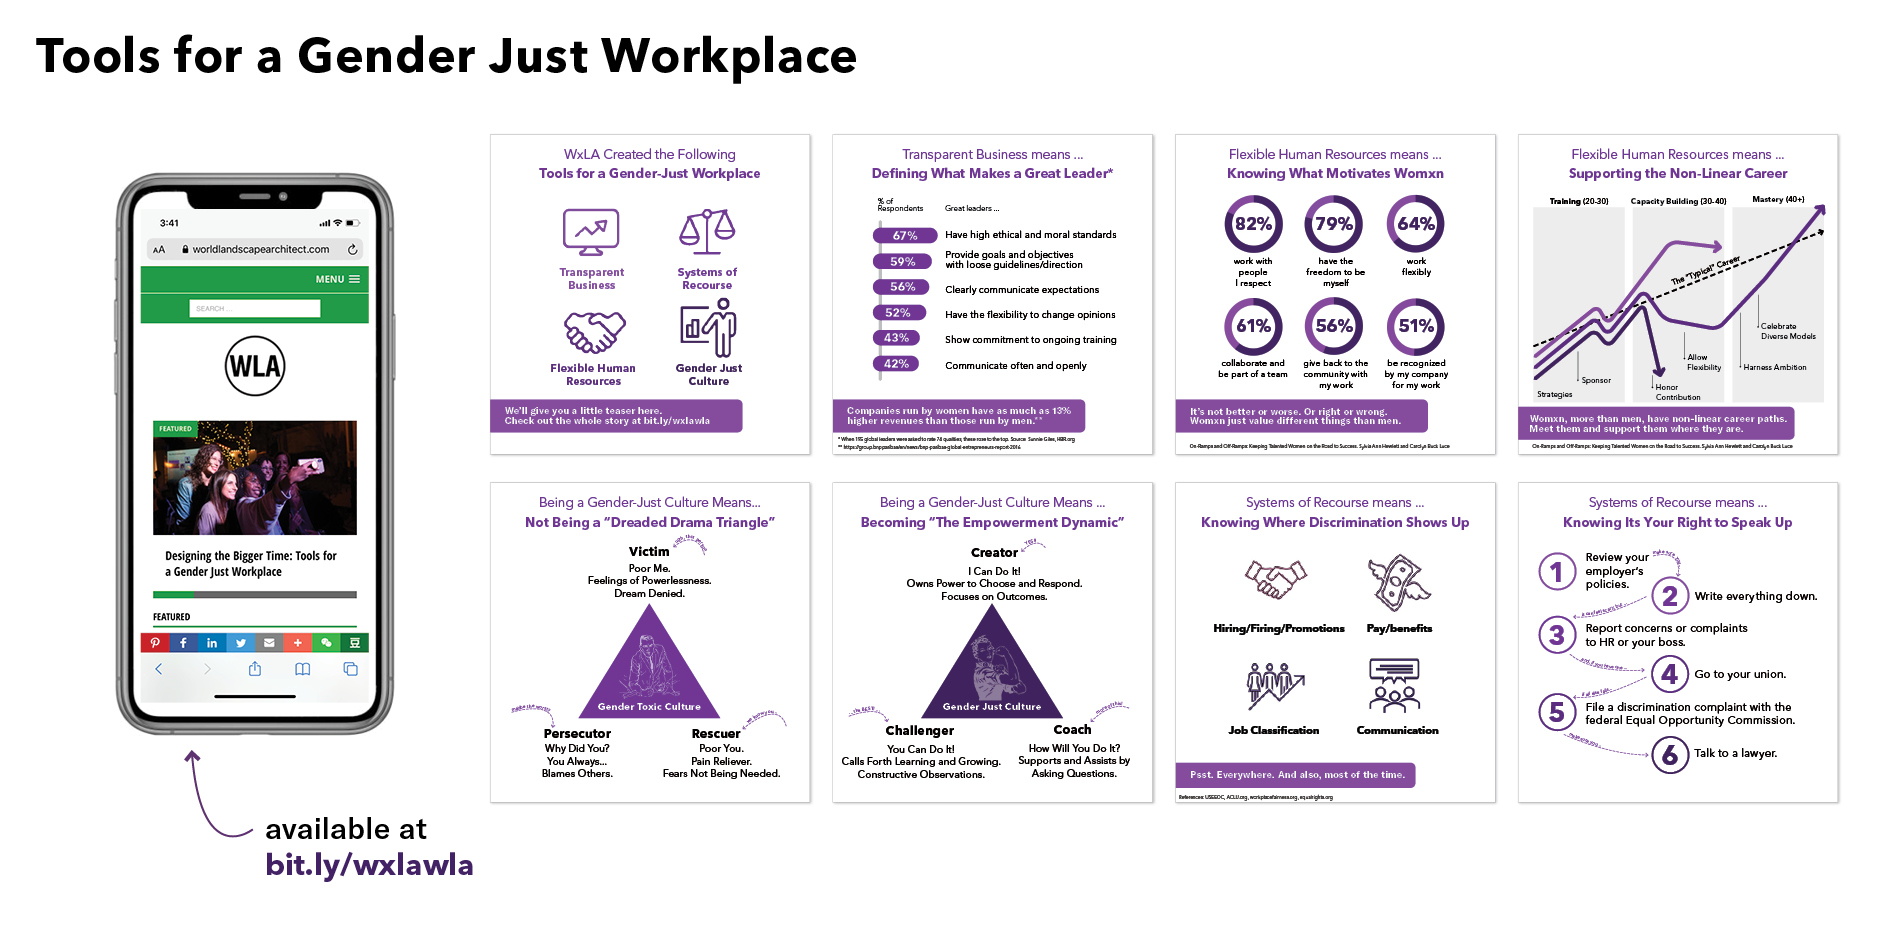 Tools for a Gender Just Workplace